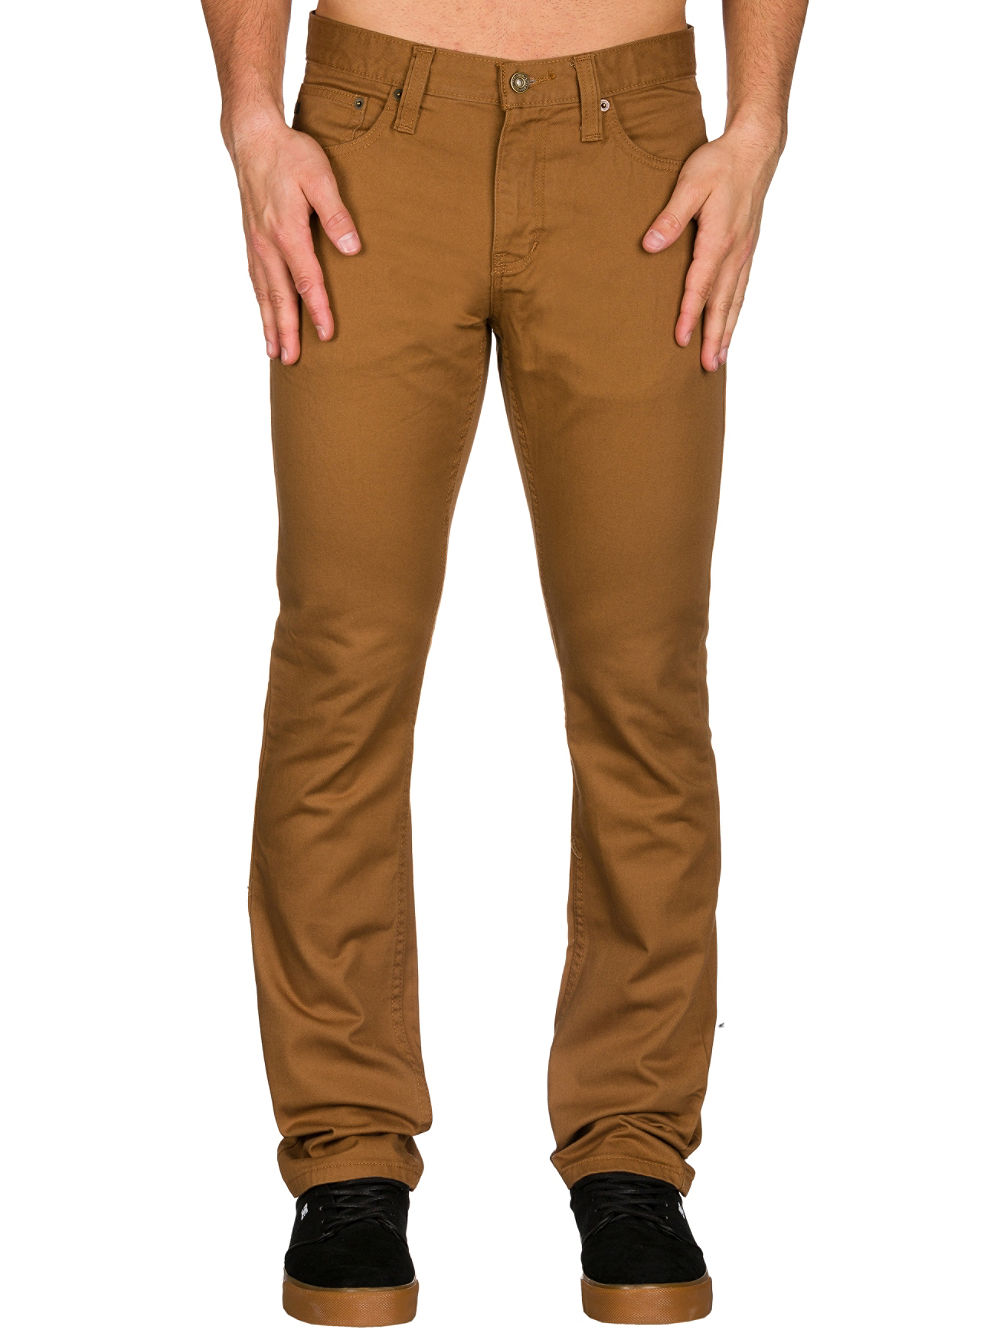 free-world-messenger-5-pocket-twill-pants